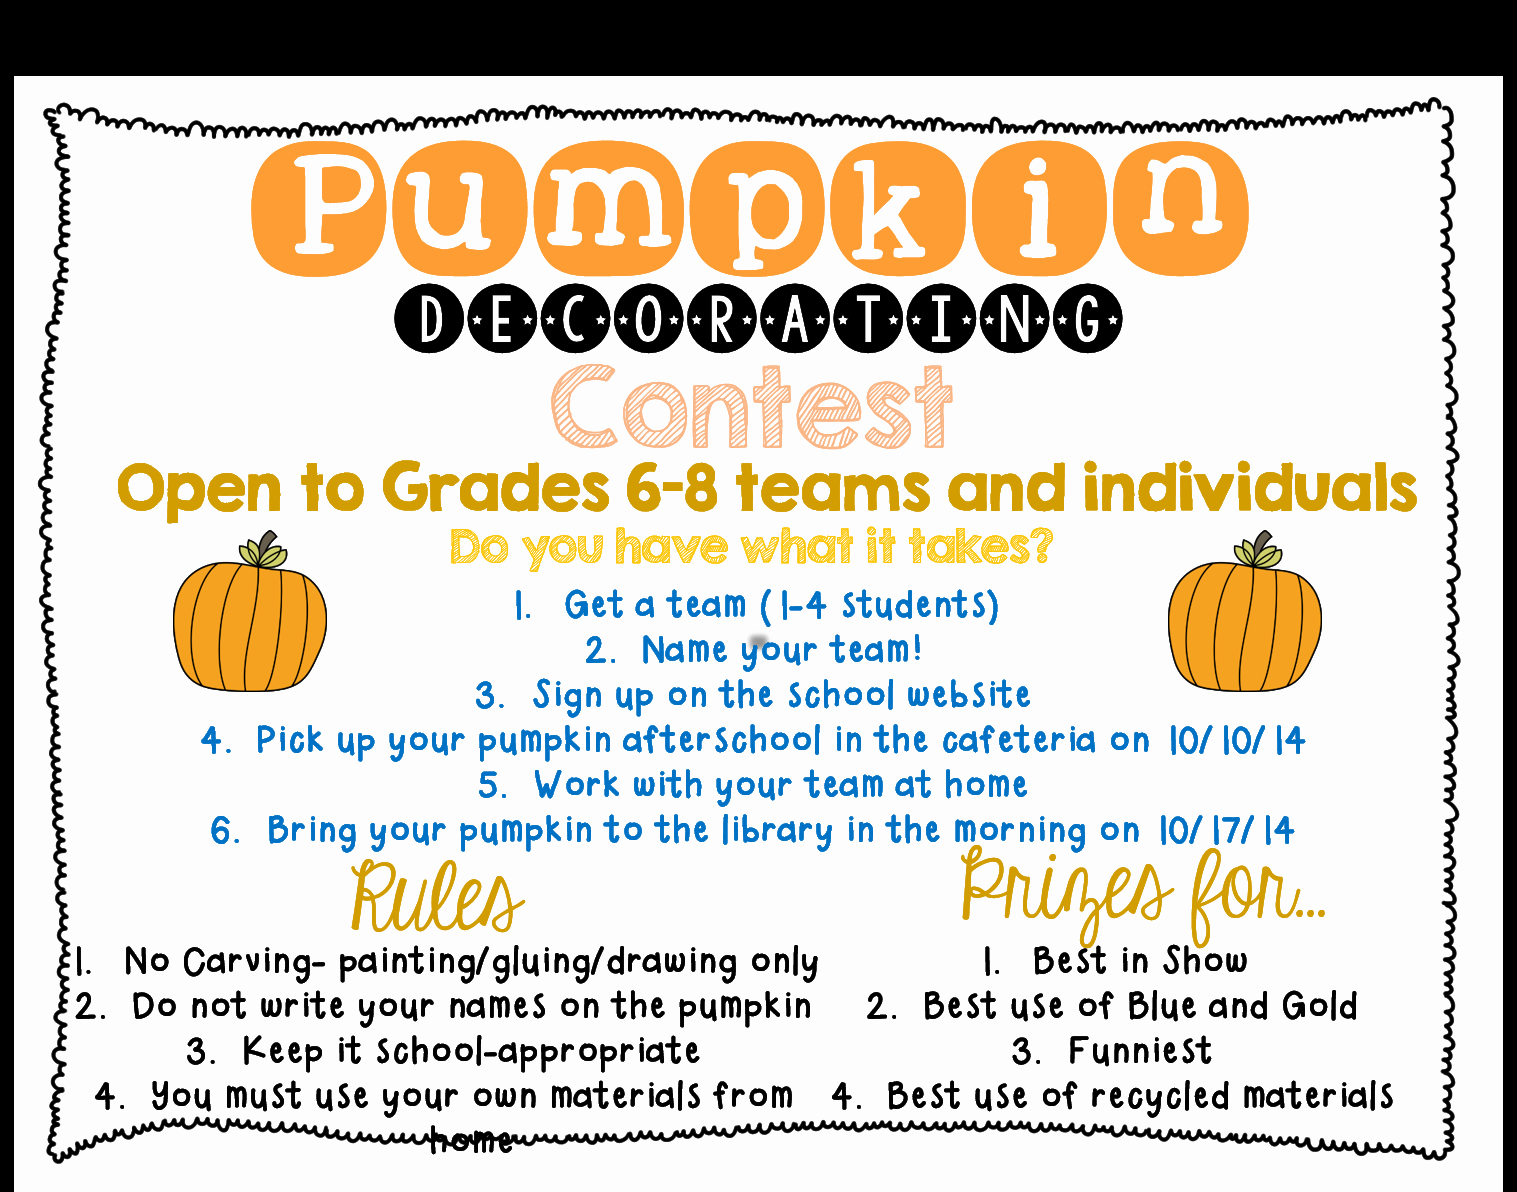 Pumpkin Carving Contest Flyer Template Beautiful How to Plan A Pumpkin Decorating Contest